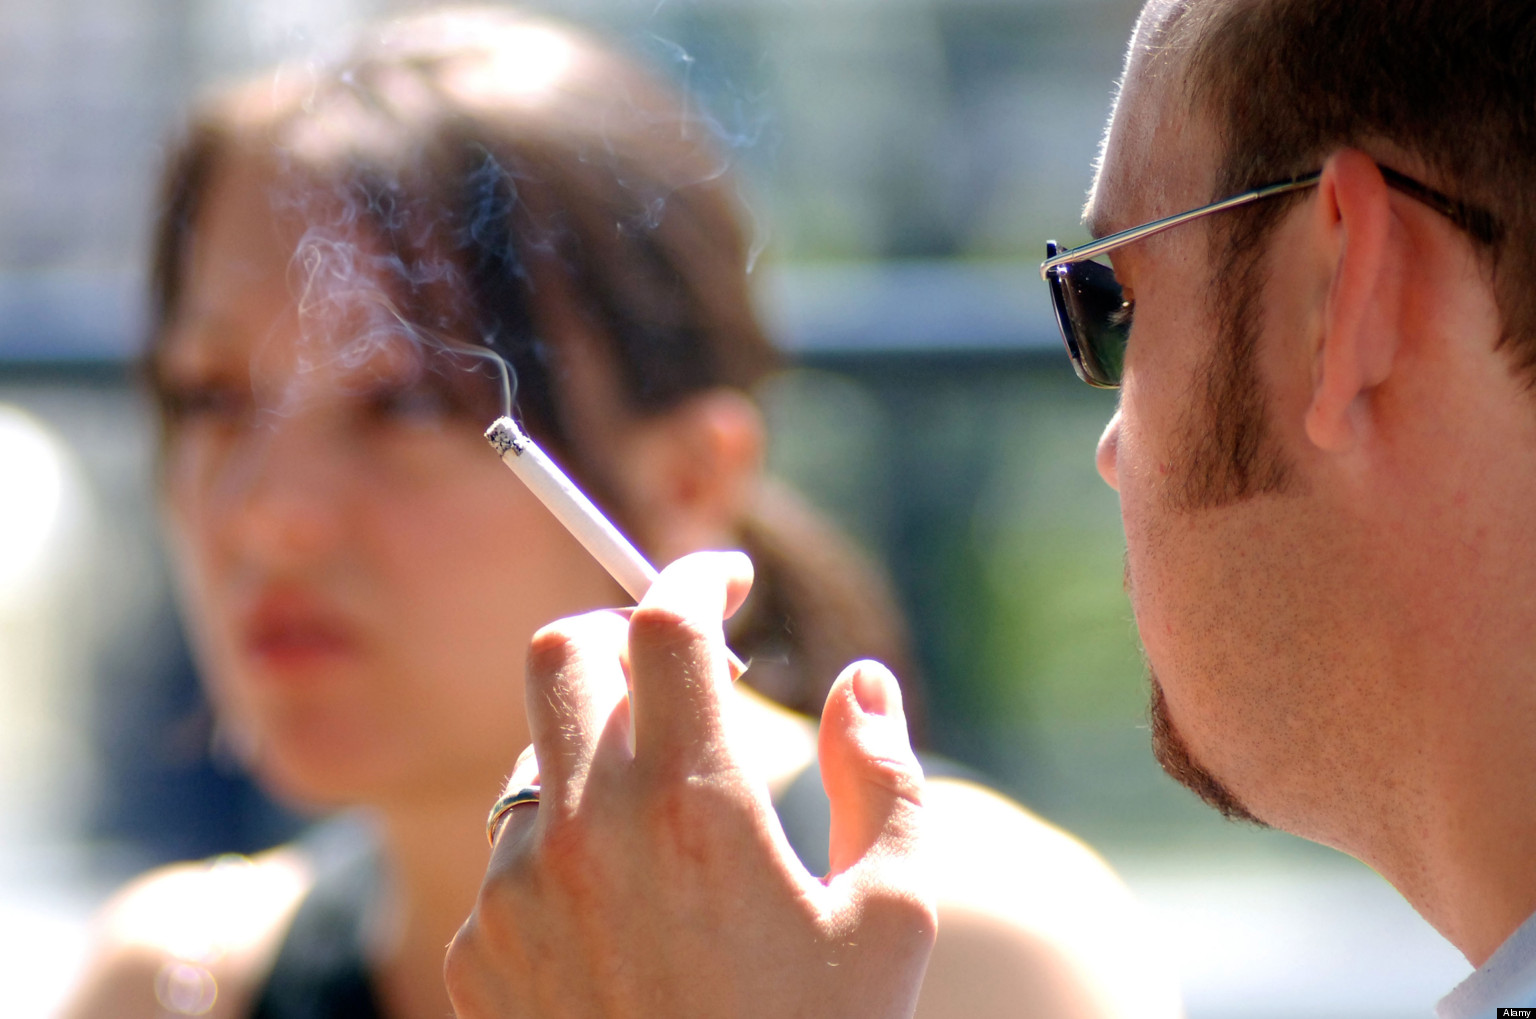 active vs passive smoking why they are equally dangerous